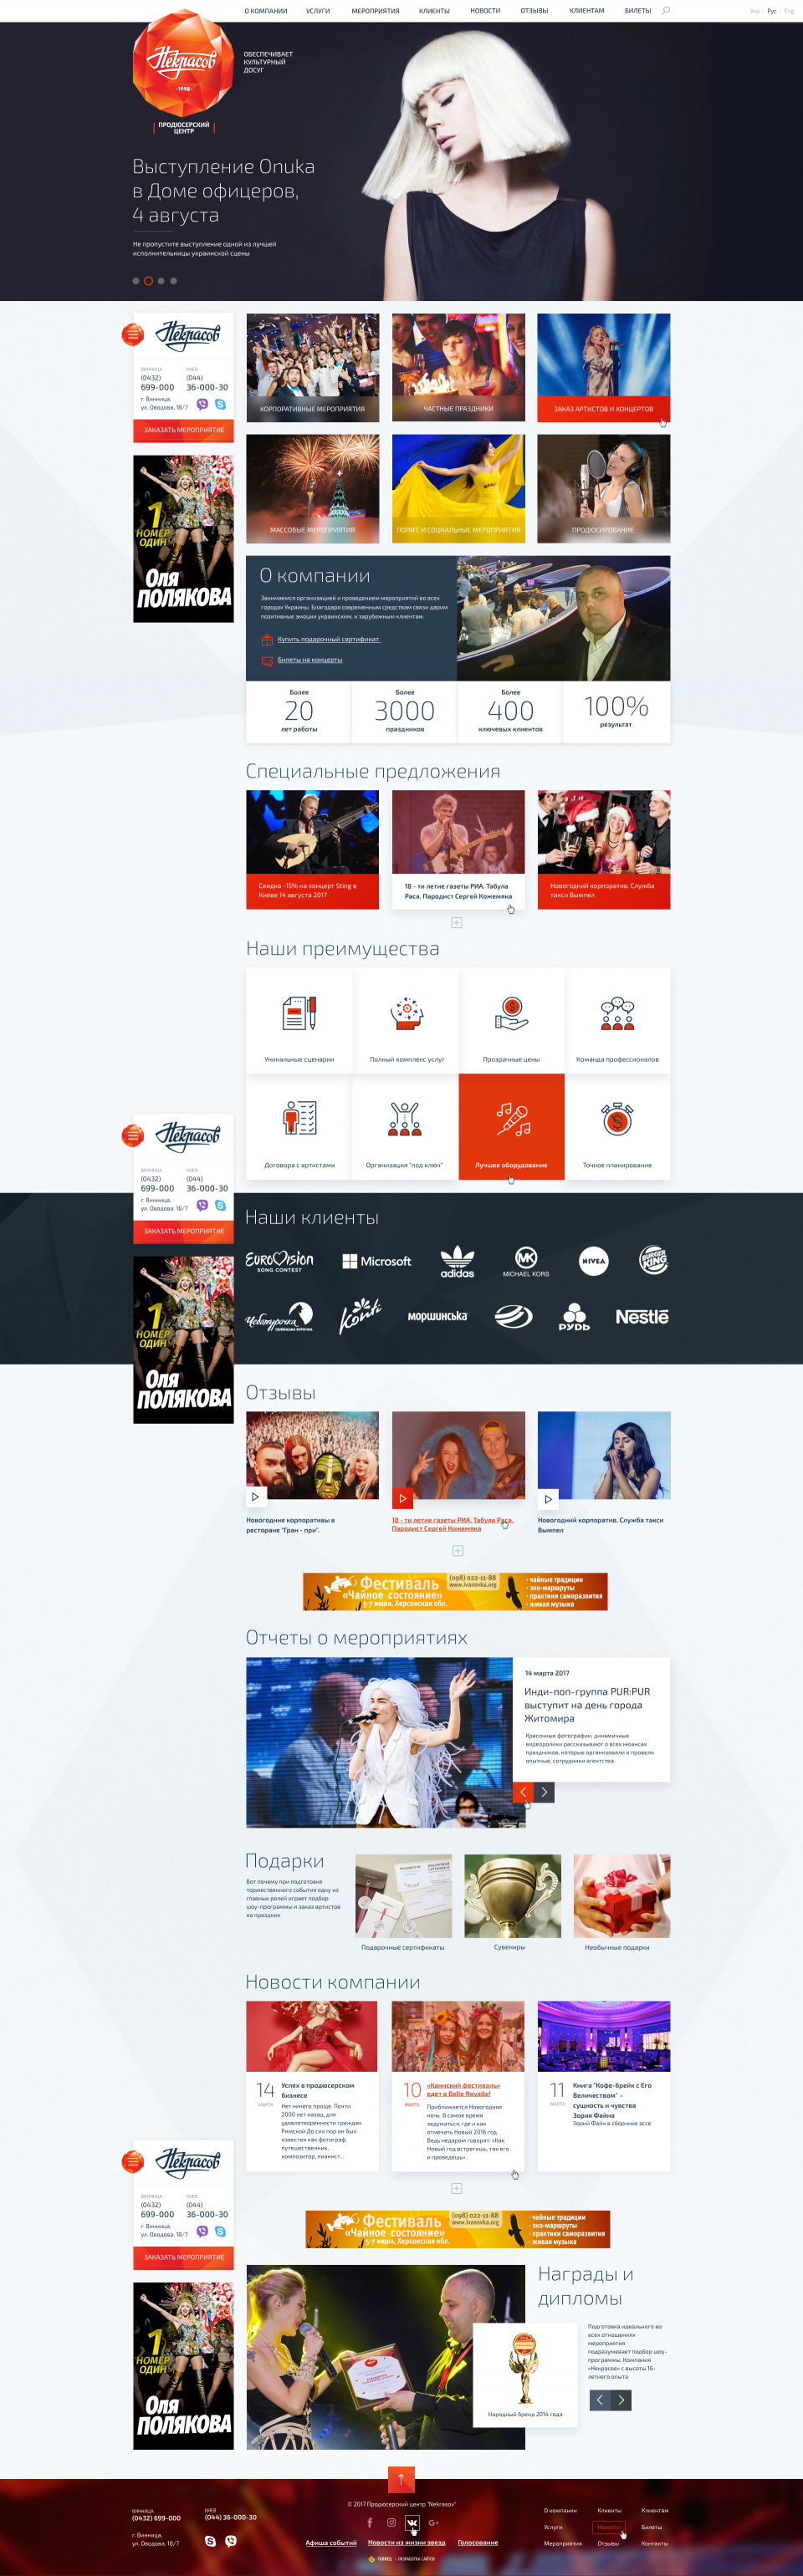 home page design — The site of the producer center Nekrasov_0